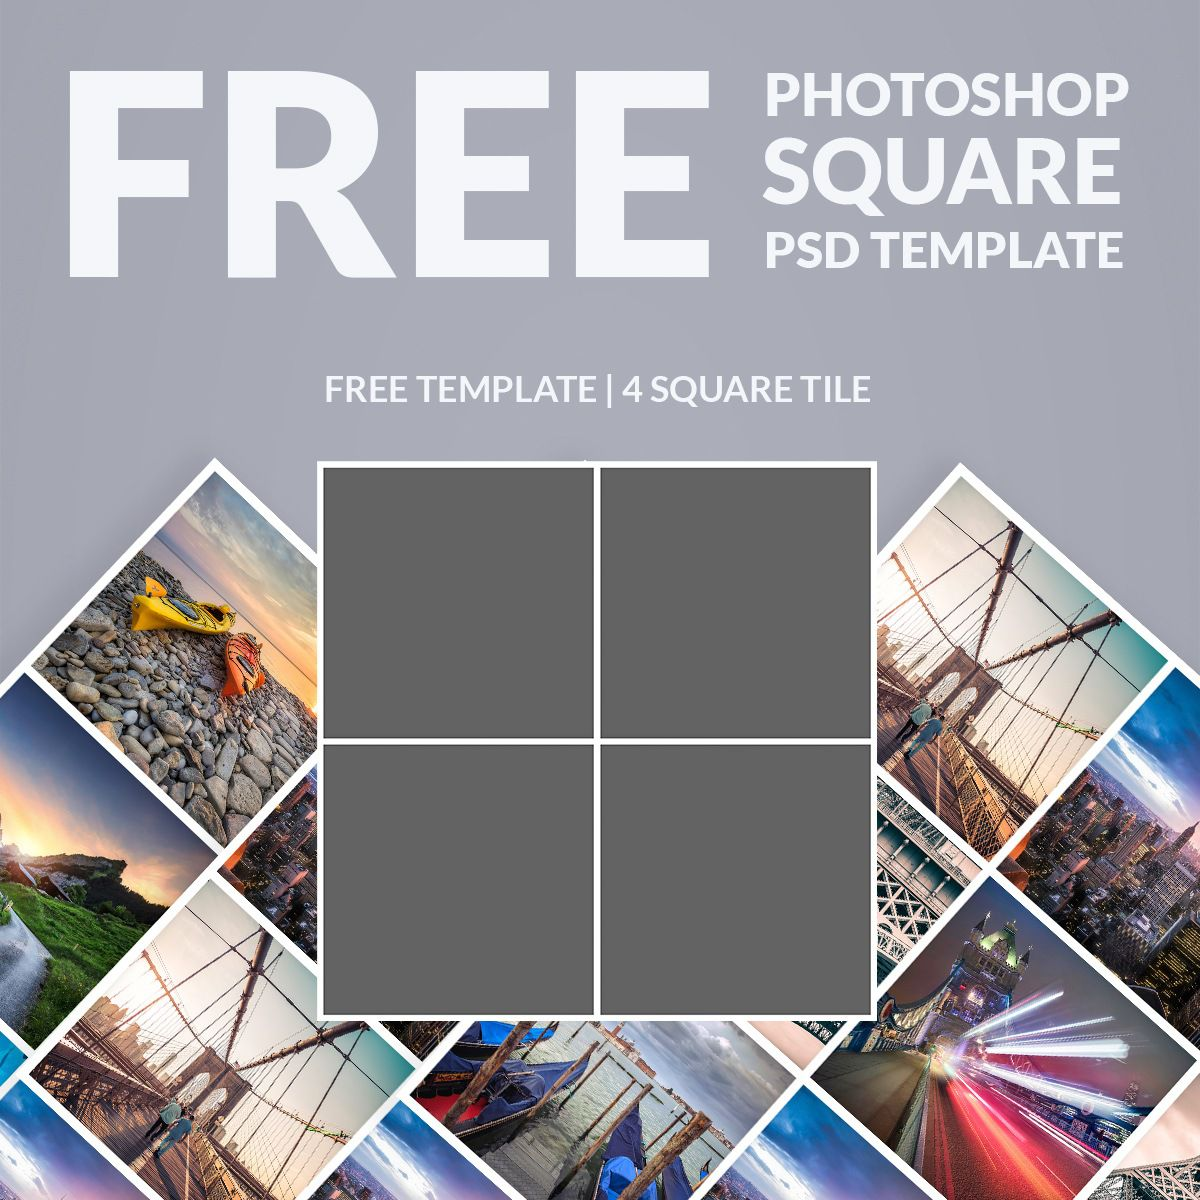 004 Marvelou Free Picture Collage Template Photo  After Effect Maker DownloadFull